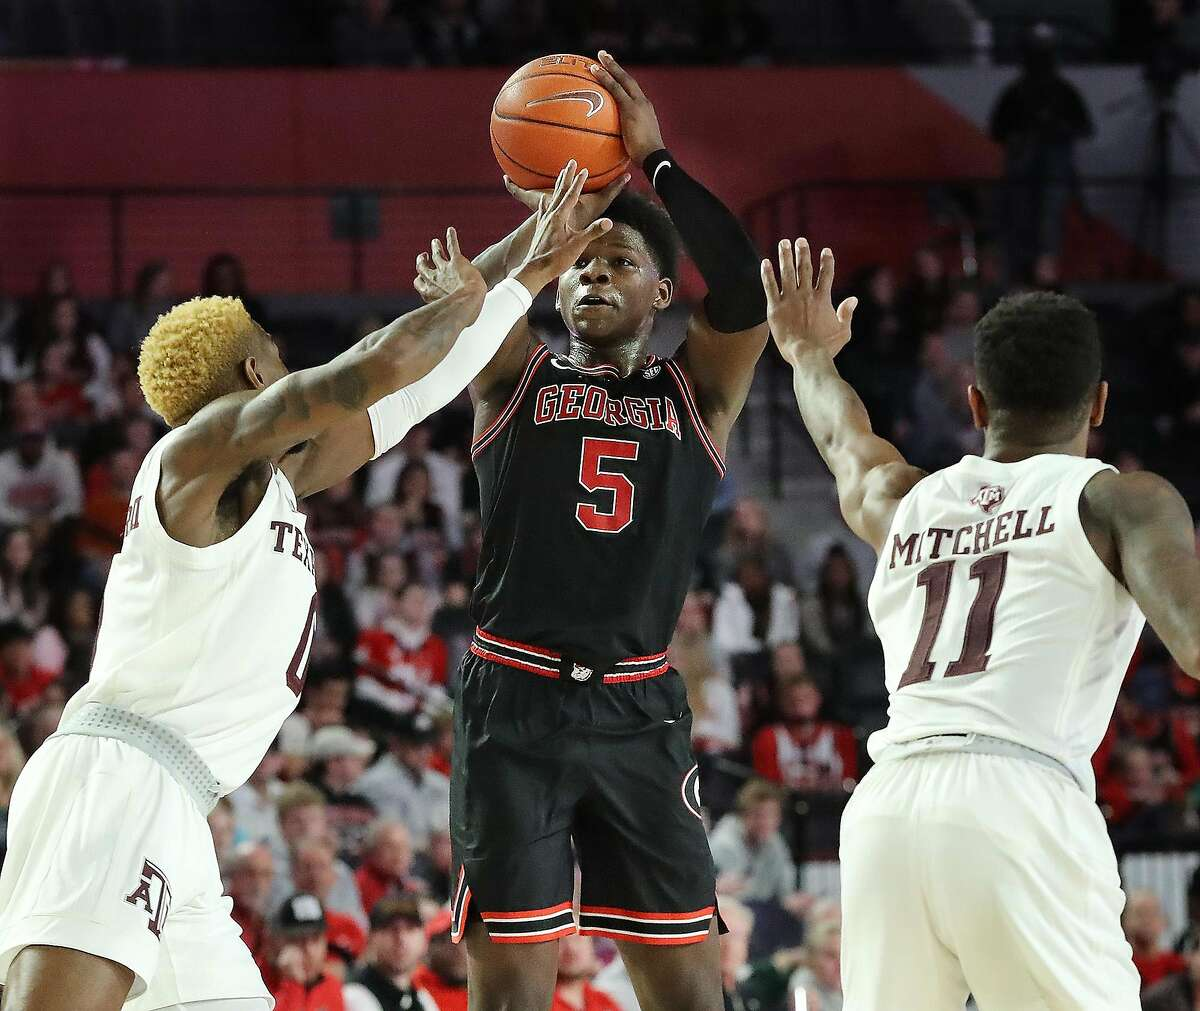 Georgia's Anthony Edwards shoots over a double-team by Texas A&M's Jay Jay Chandler, left, and Wendell Mitchell (11) during the first half on Saturday, Feb. 1, 2020, at Stegeman Coliseum in Athens, Ga. Georgia won, 63-48. (Curtis Compton/Atlanta Journal-Constitution/TNS)